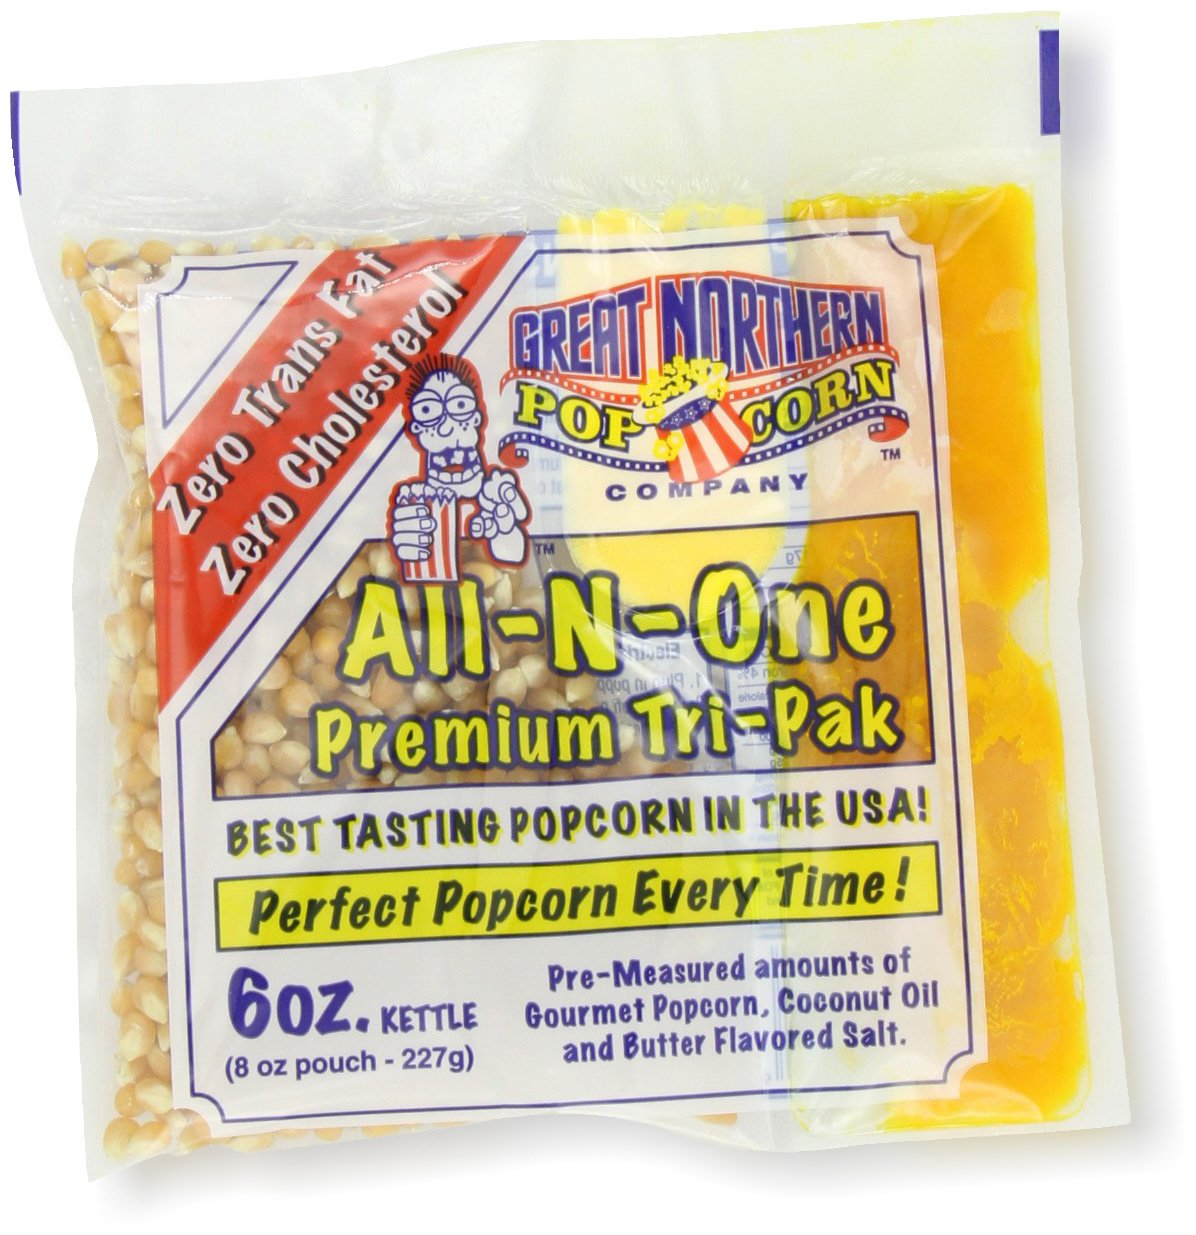 4105 Great Northern Popcorn Premium 6 Ounce Popcorn Portion Packs, CASE OF 24 by Great Northern Popcorn Company